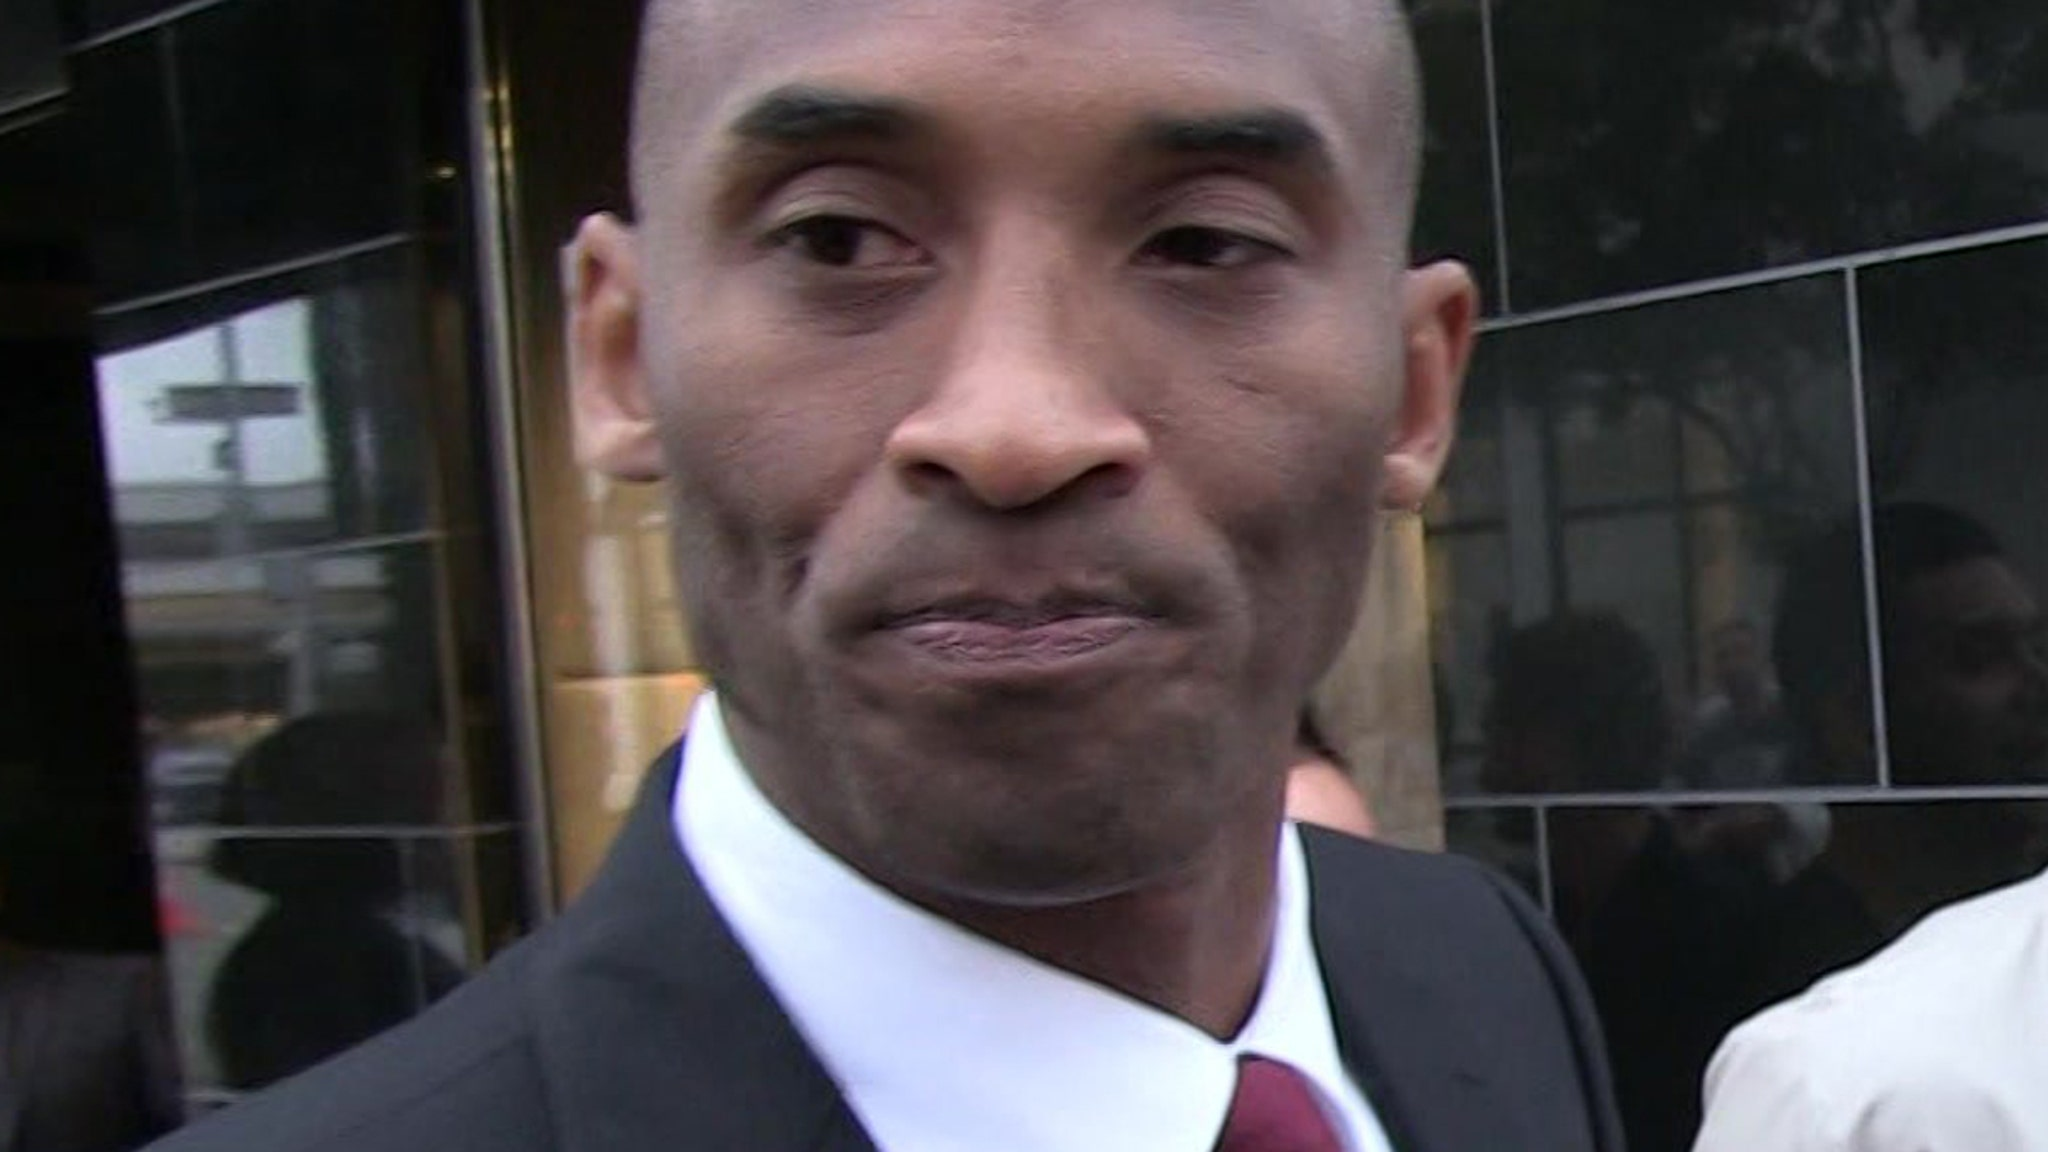 Kobe Bryant Memorabilia Prices Soar, Scumbags Pushing Fakes